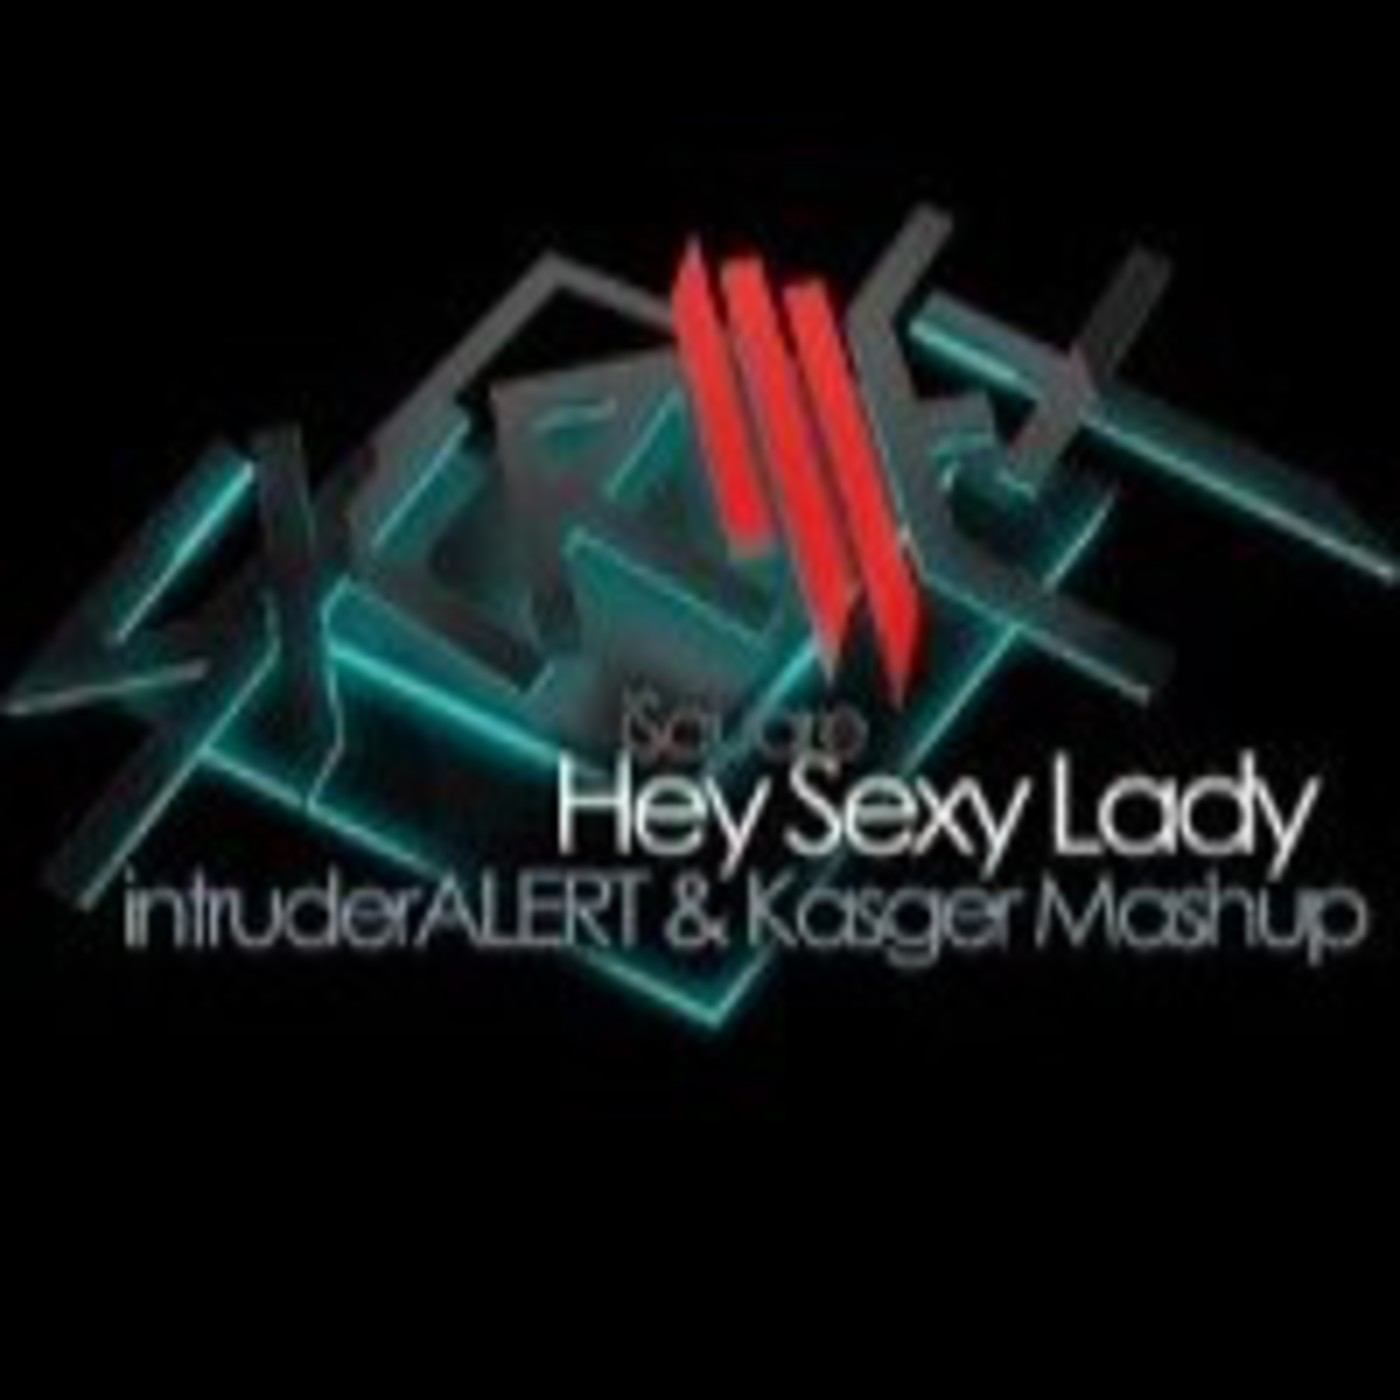 Hey Sexy Lady (Skrillex Remix) 2010 en Dubstep, Drum & Bass